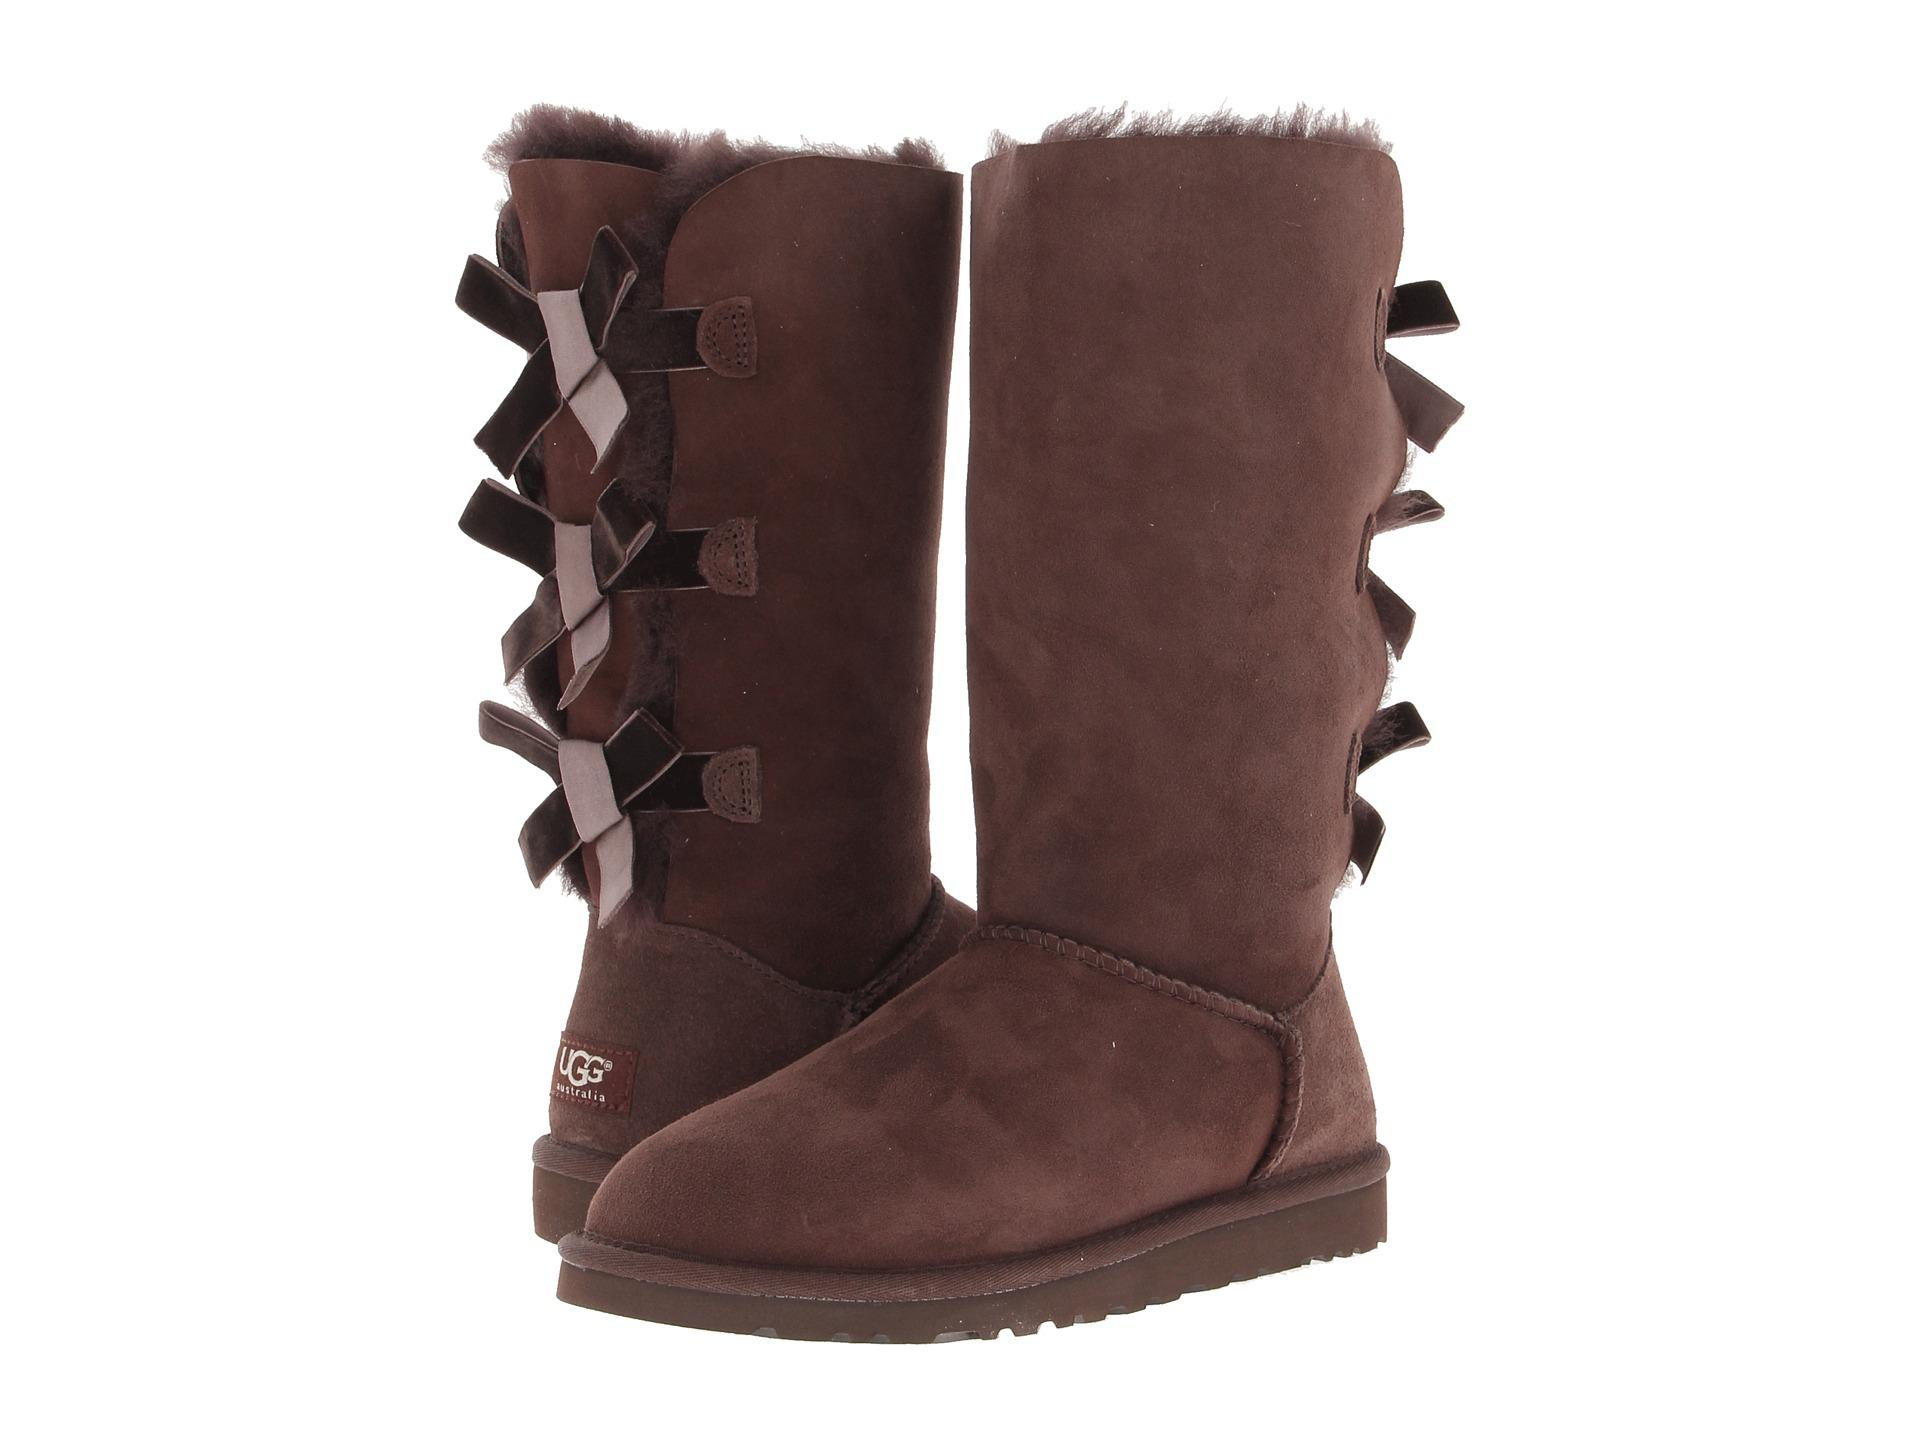 UGG Australia Chocolate Brown Boots ...